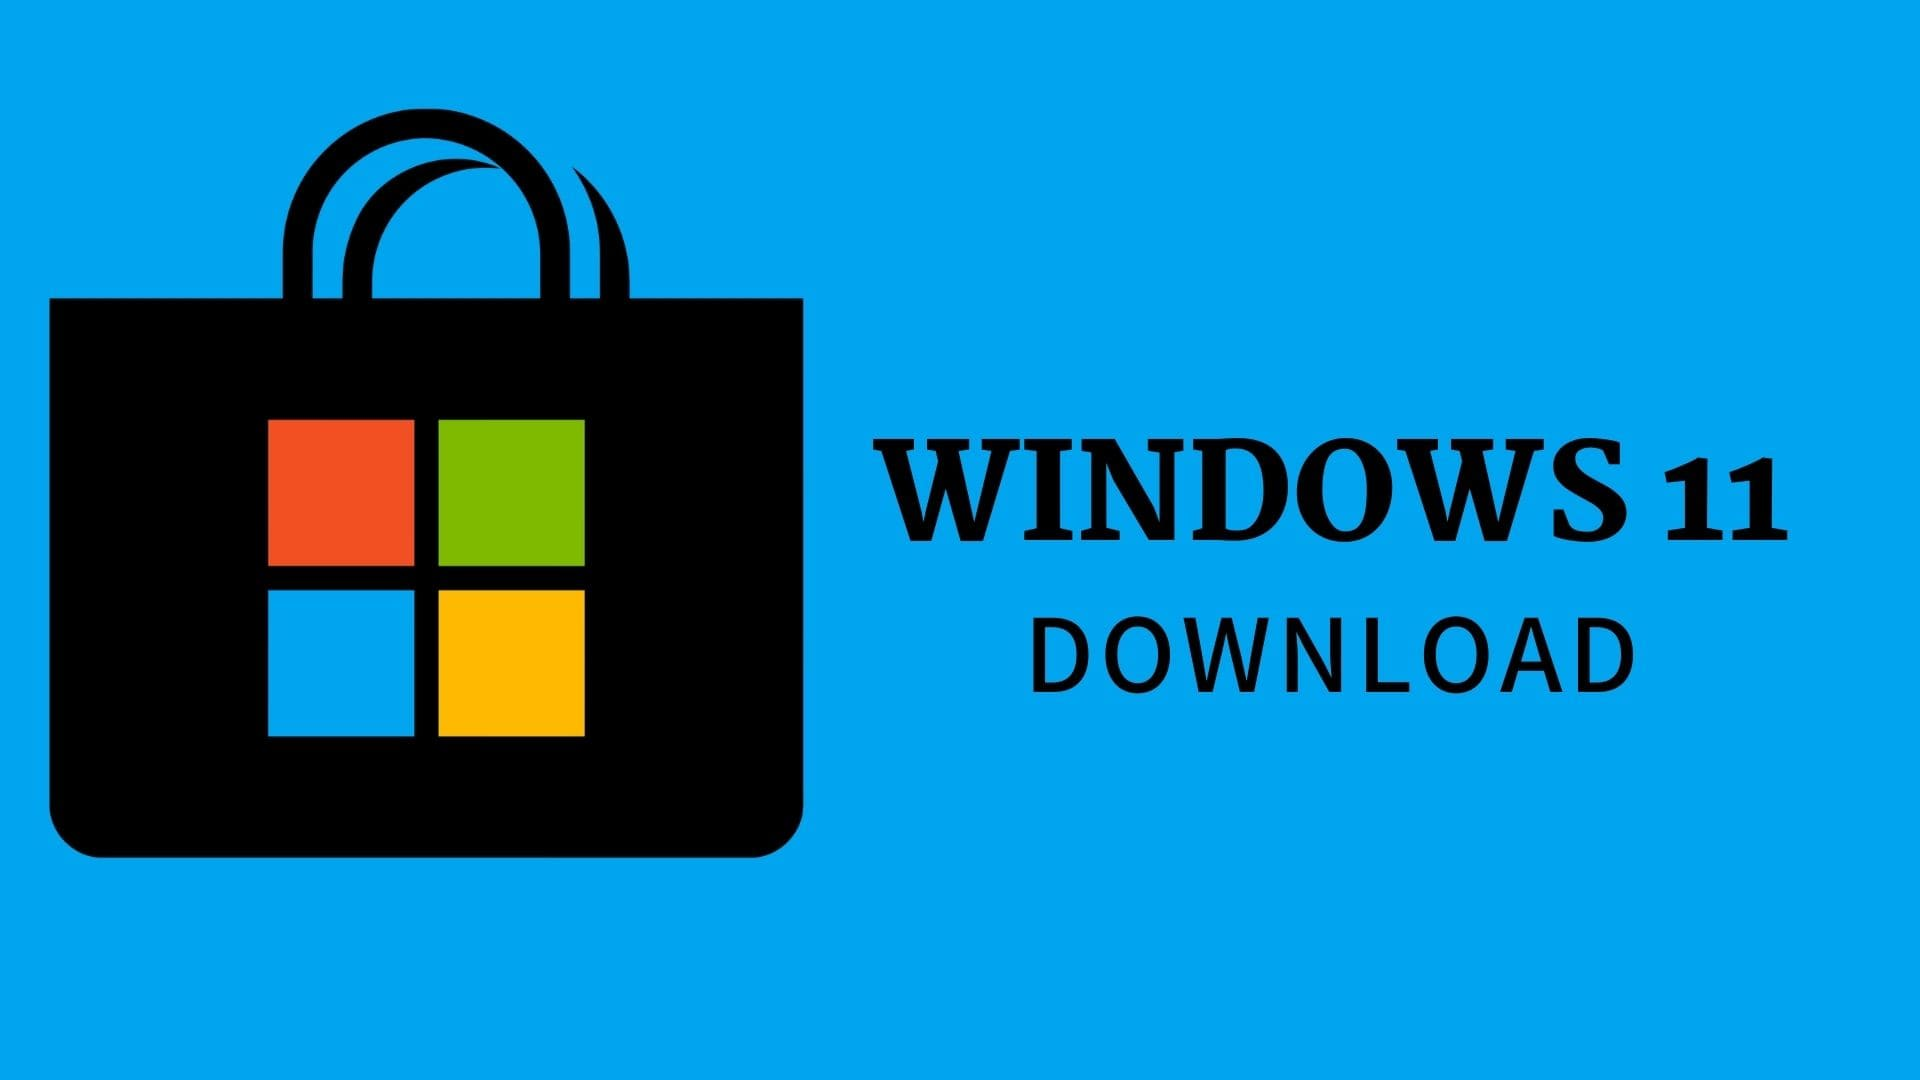 Windows 11 Images Wallpapers HD Download